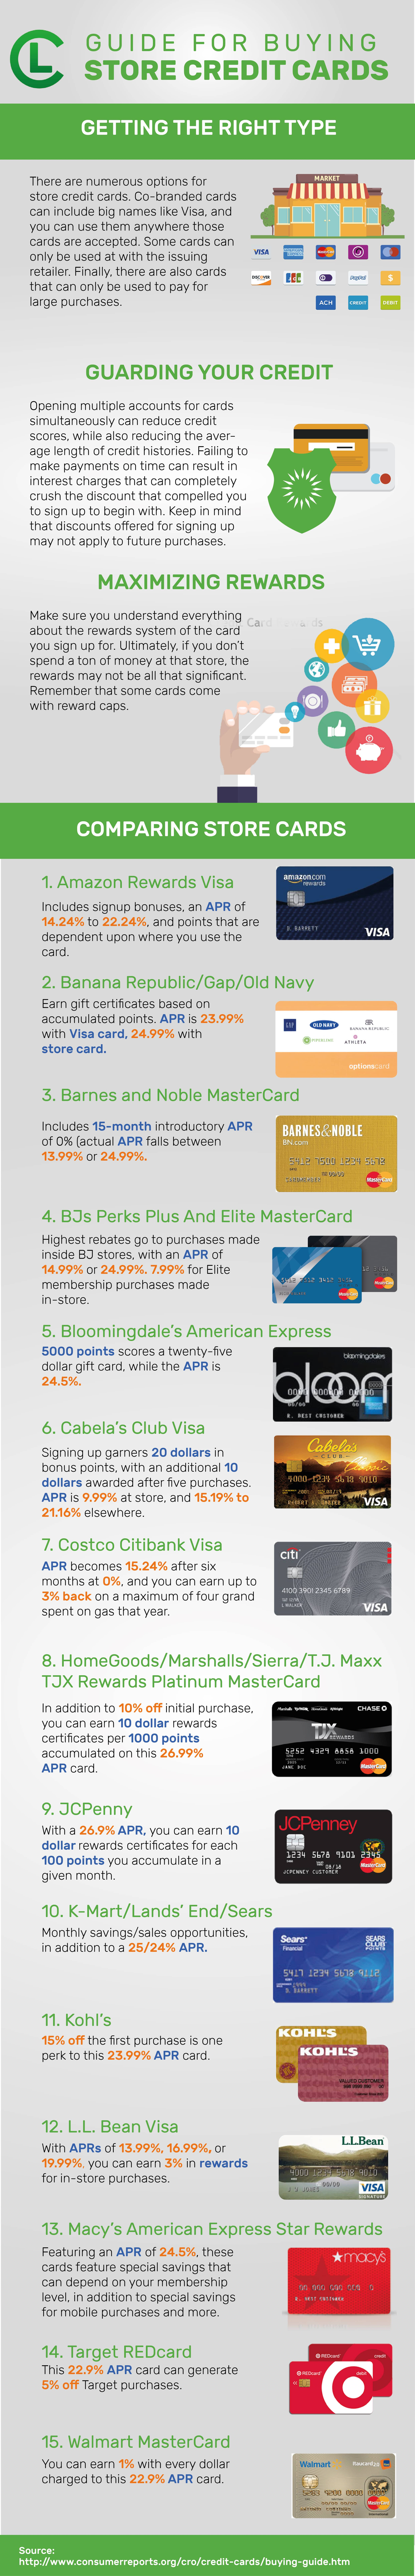 Guide For Buying Store Credit Cards Infographic